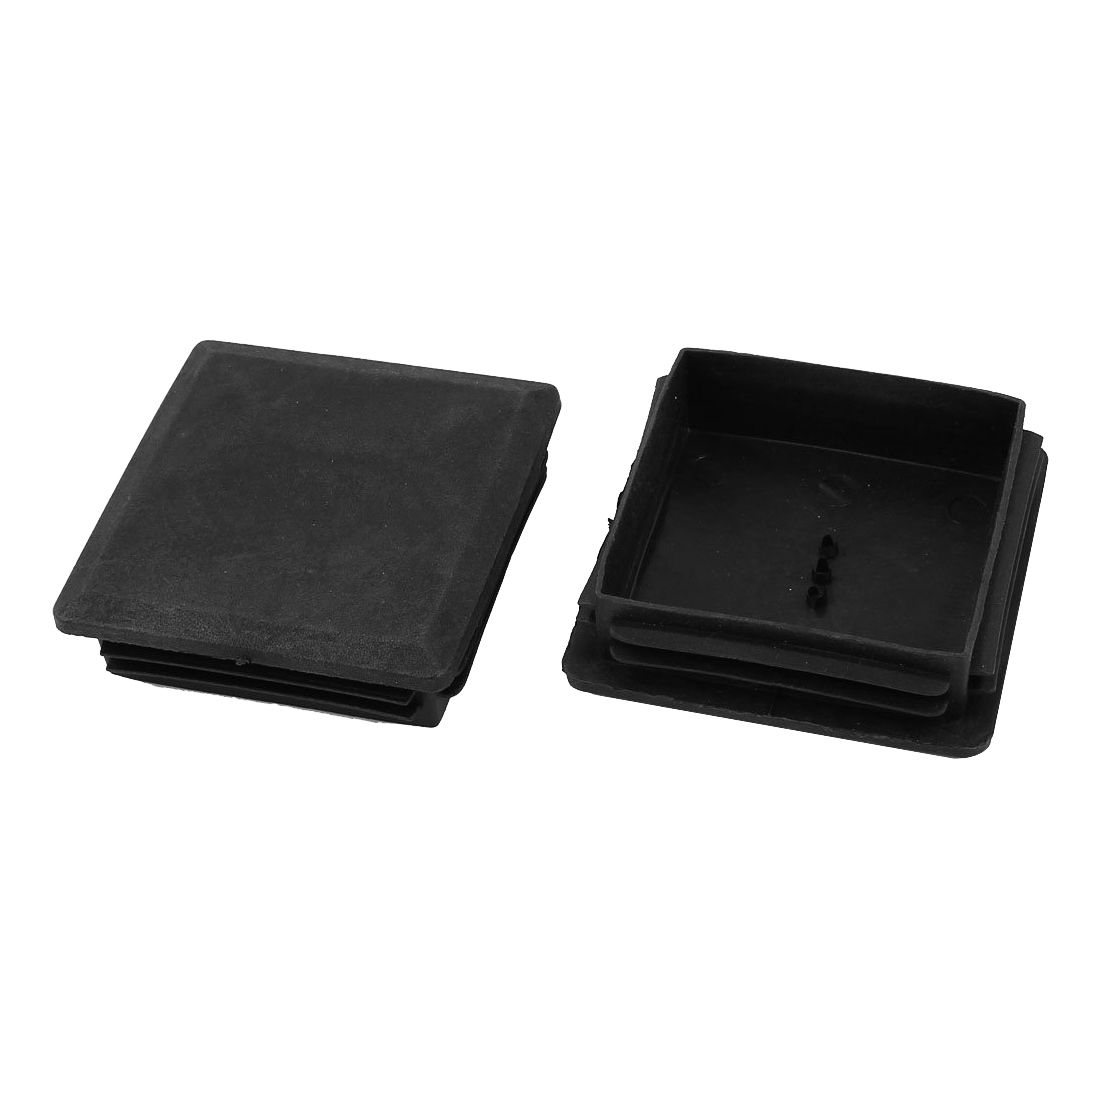 Promotion! 80mm X 80mm Square Plastic Caps Pipe Tube Inserts End Plug 2 Pieces